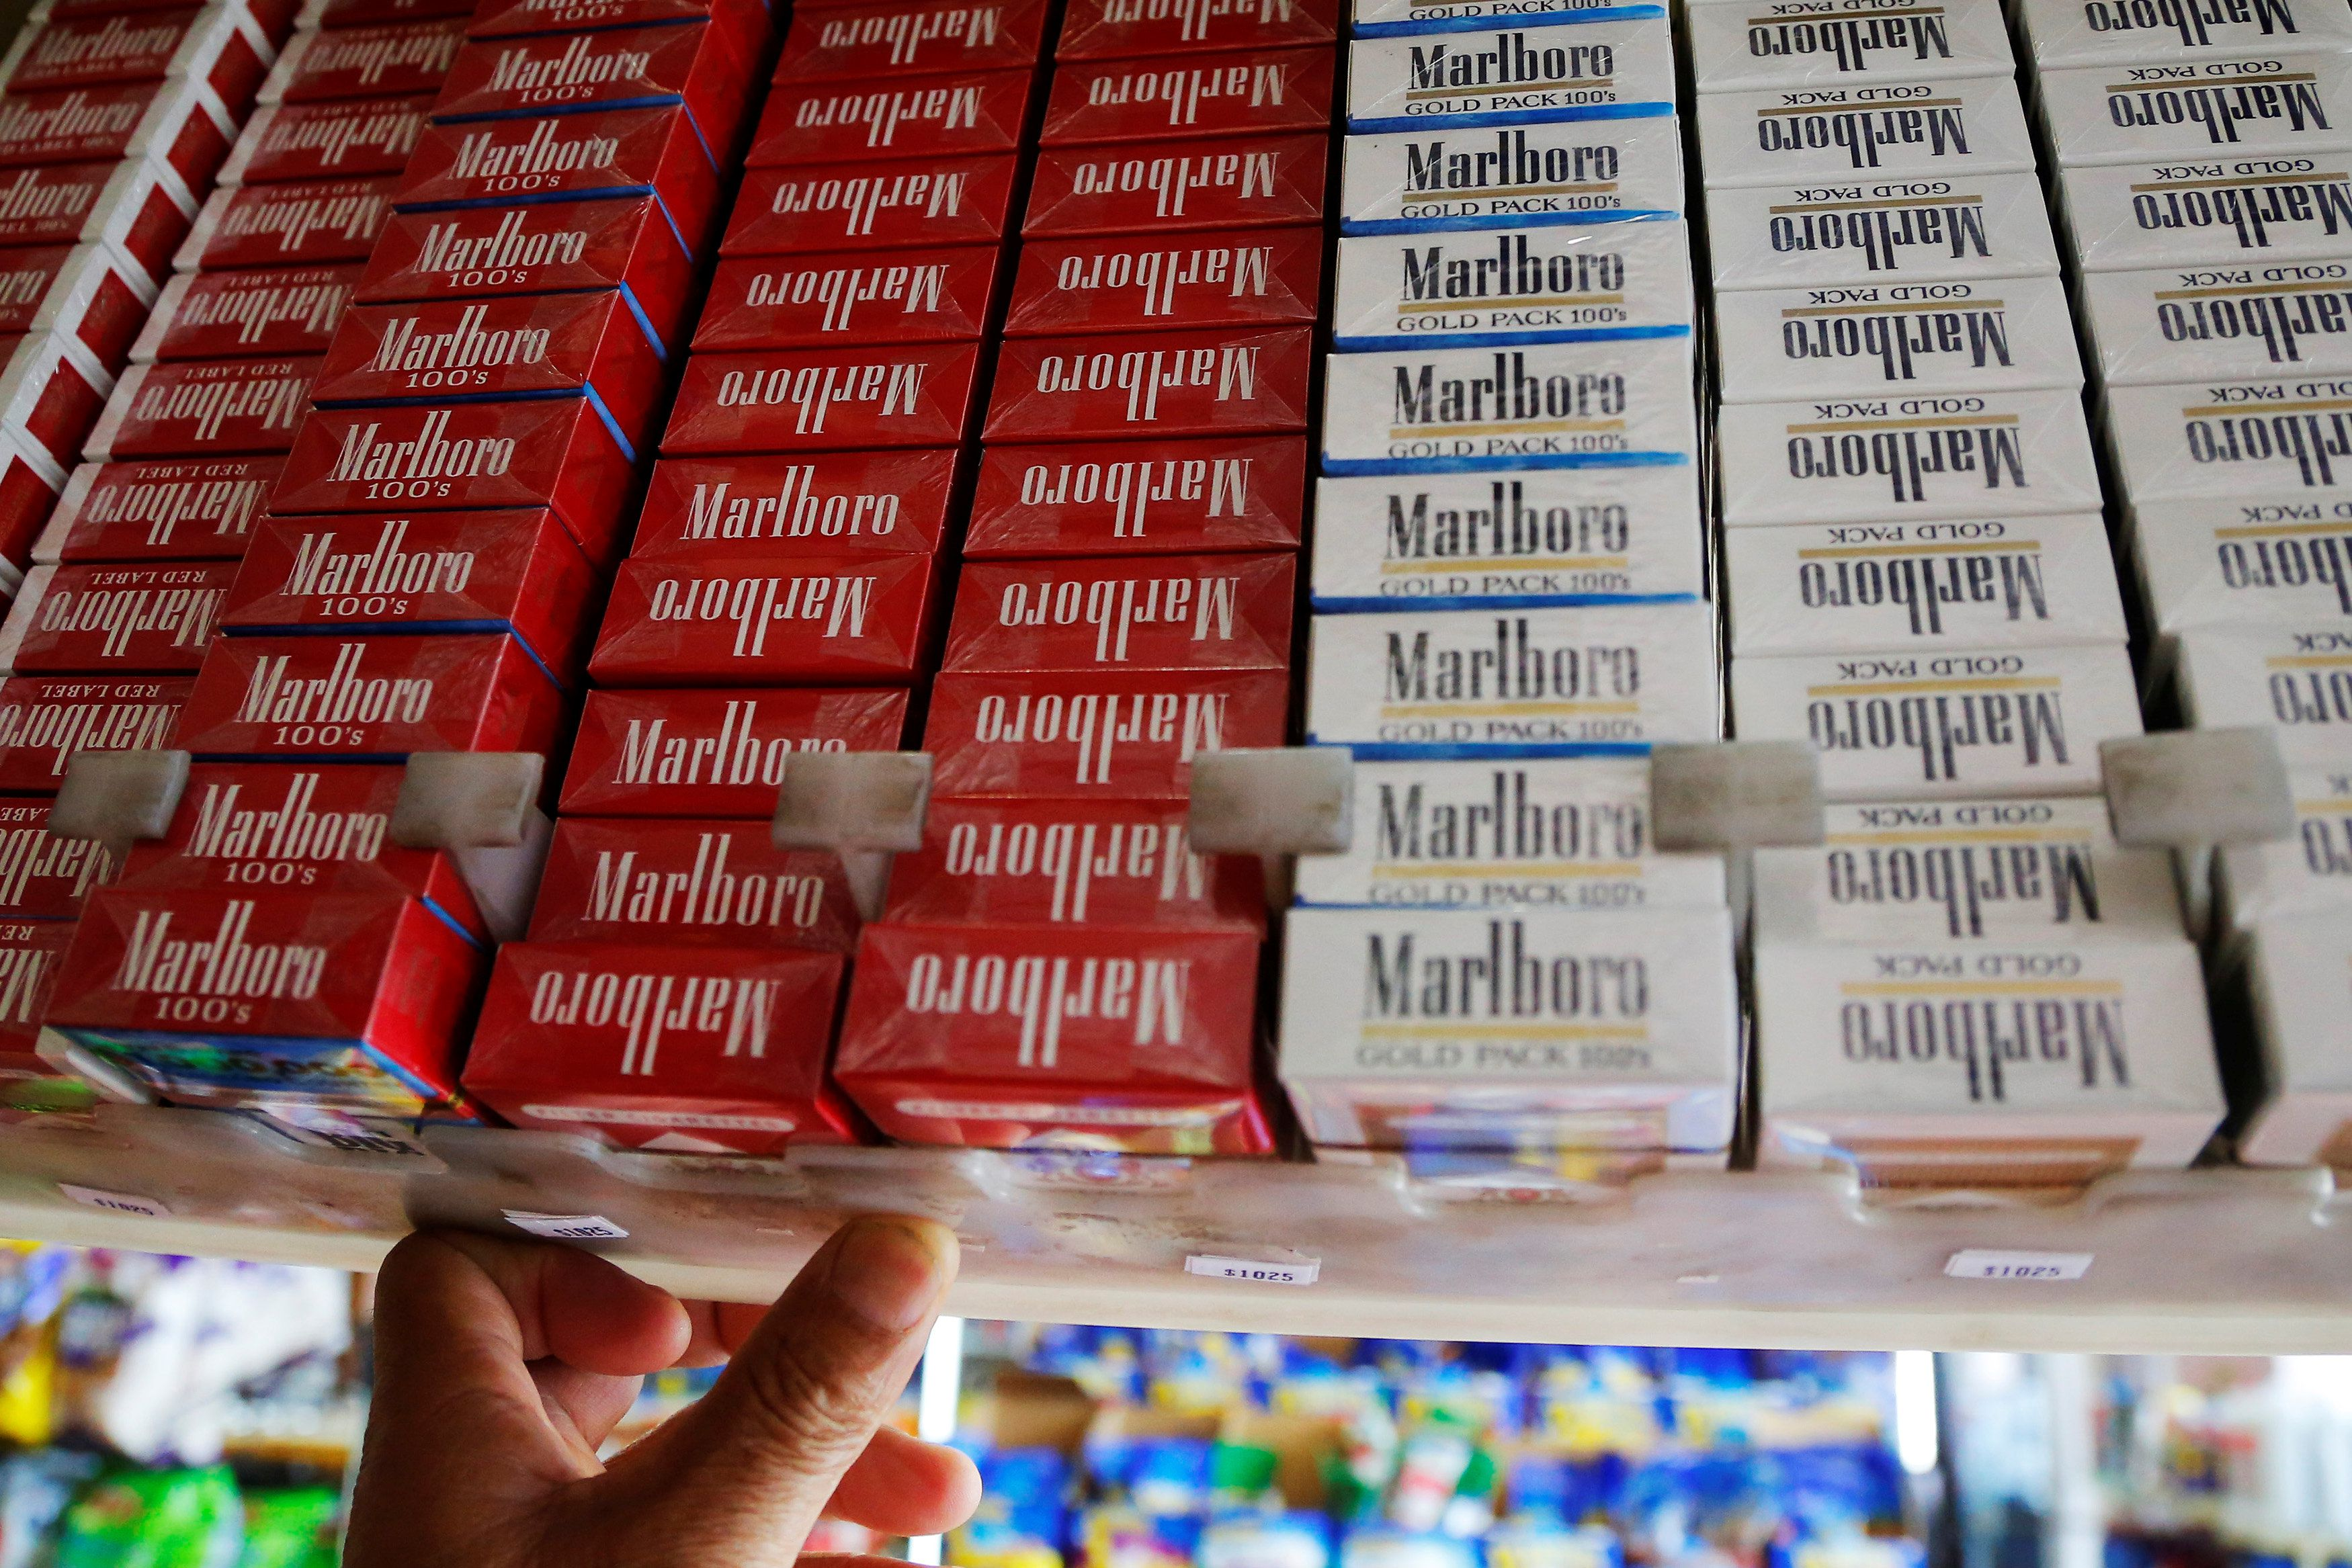 After Mass  raised its cigarette tax, smuggling exploded